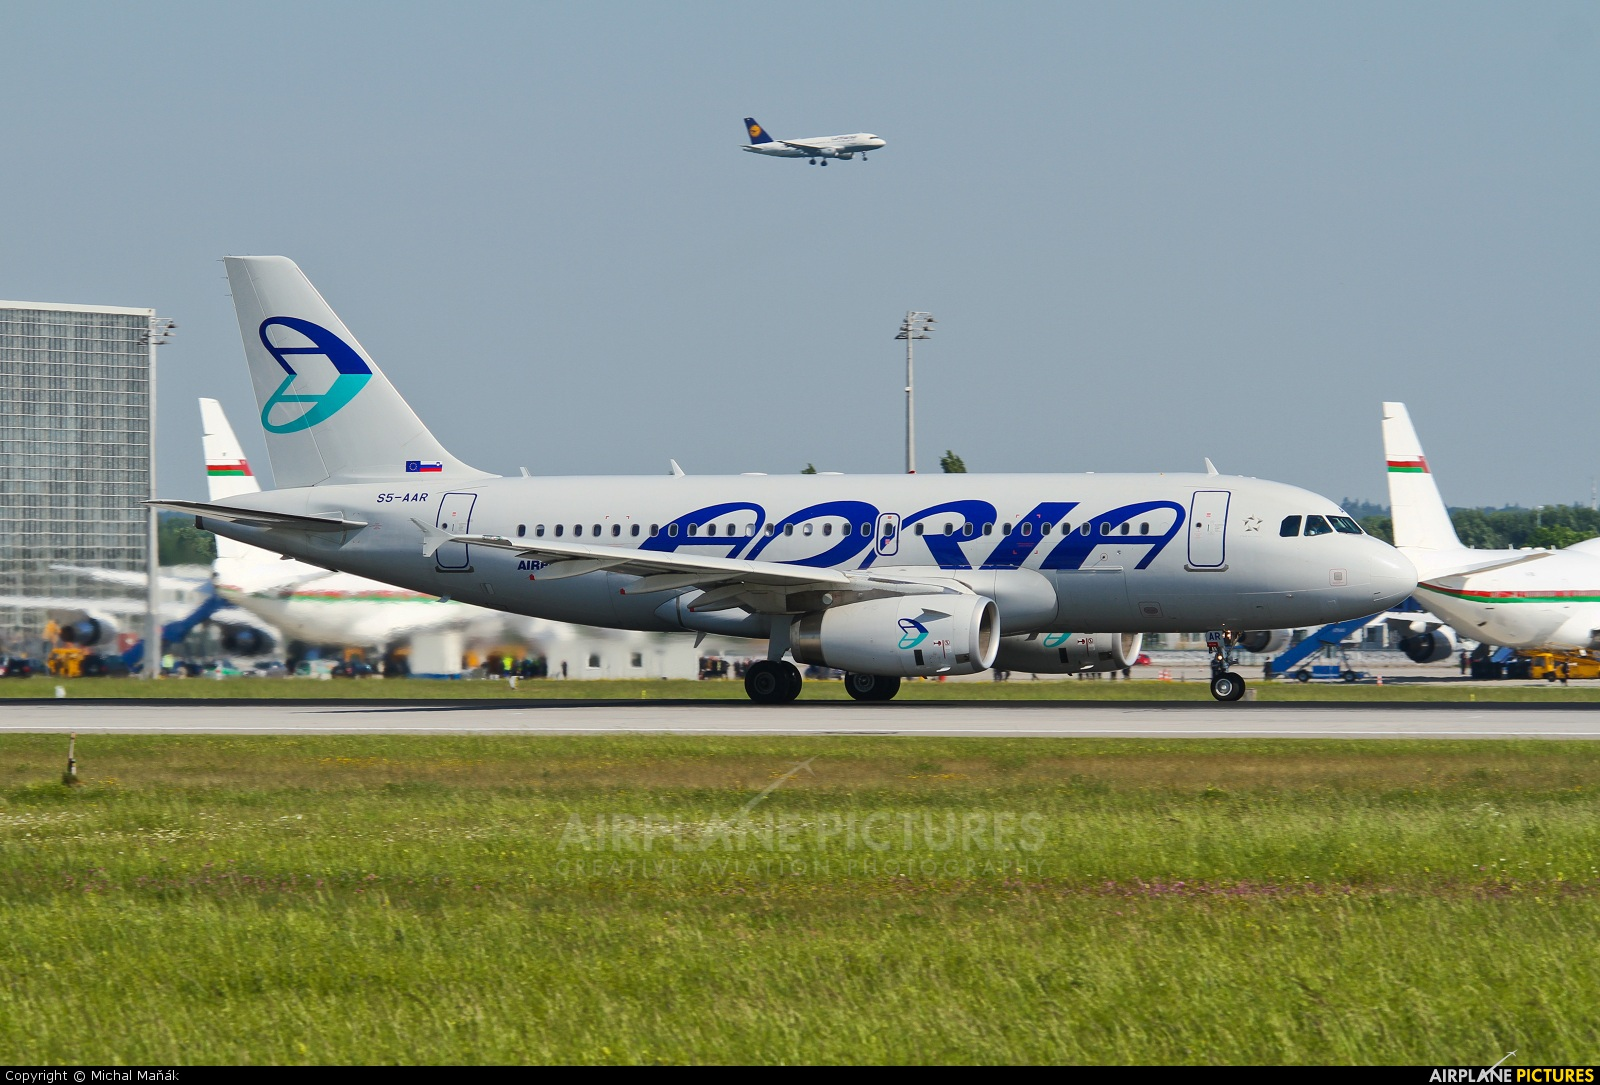 Adria Airways S5-AAR aircraft at Munich